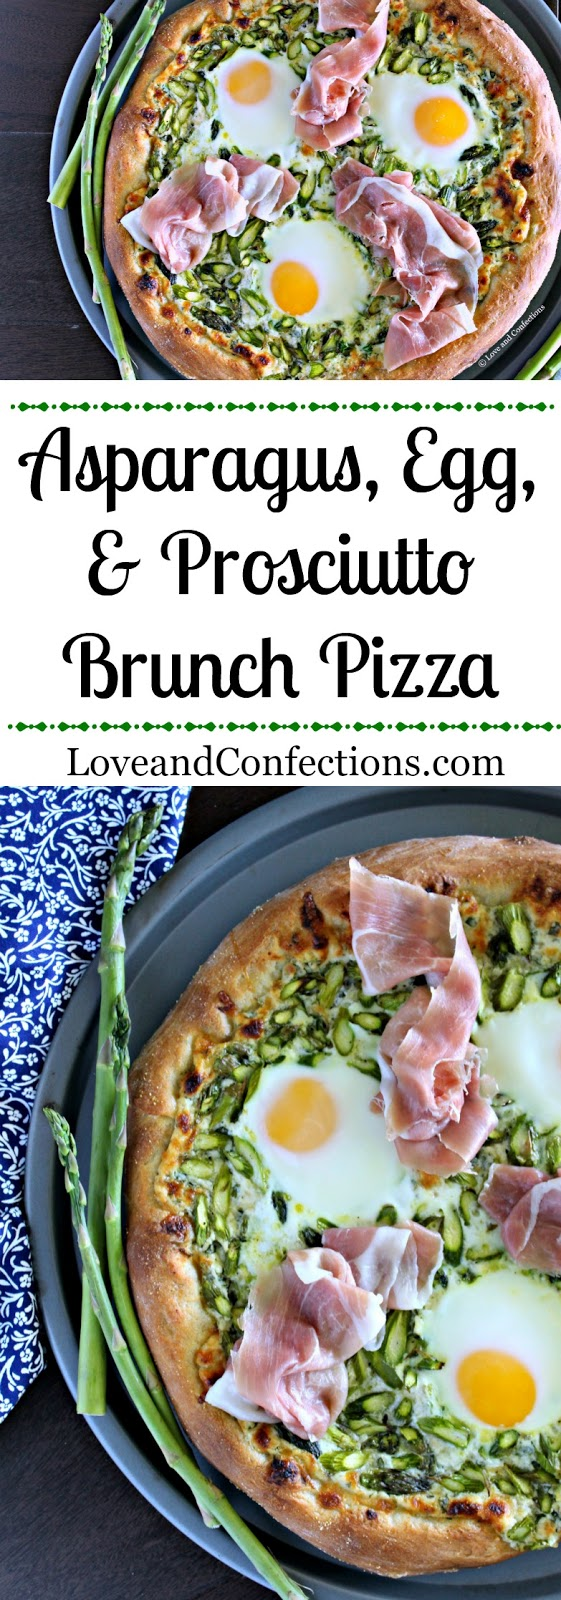 Asparagus, Egg & Prosciutto Brunch Pizza from LoveandConfections.com #BrunchWeek #sponsored